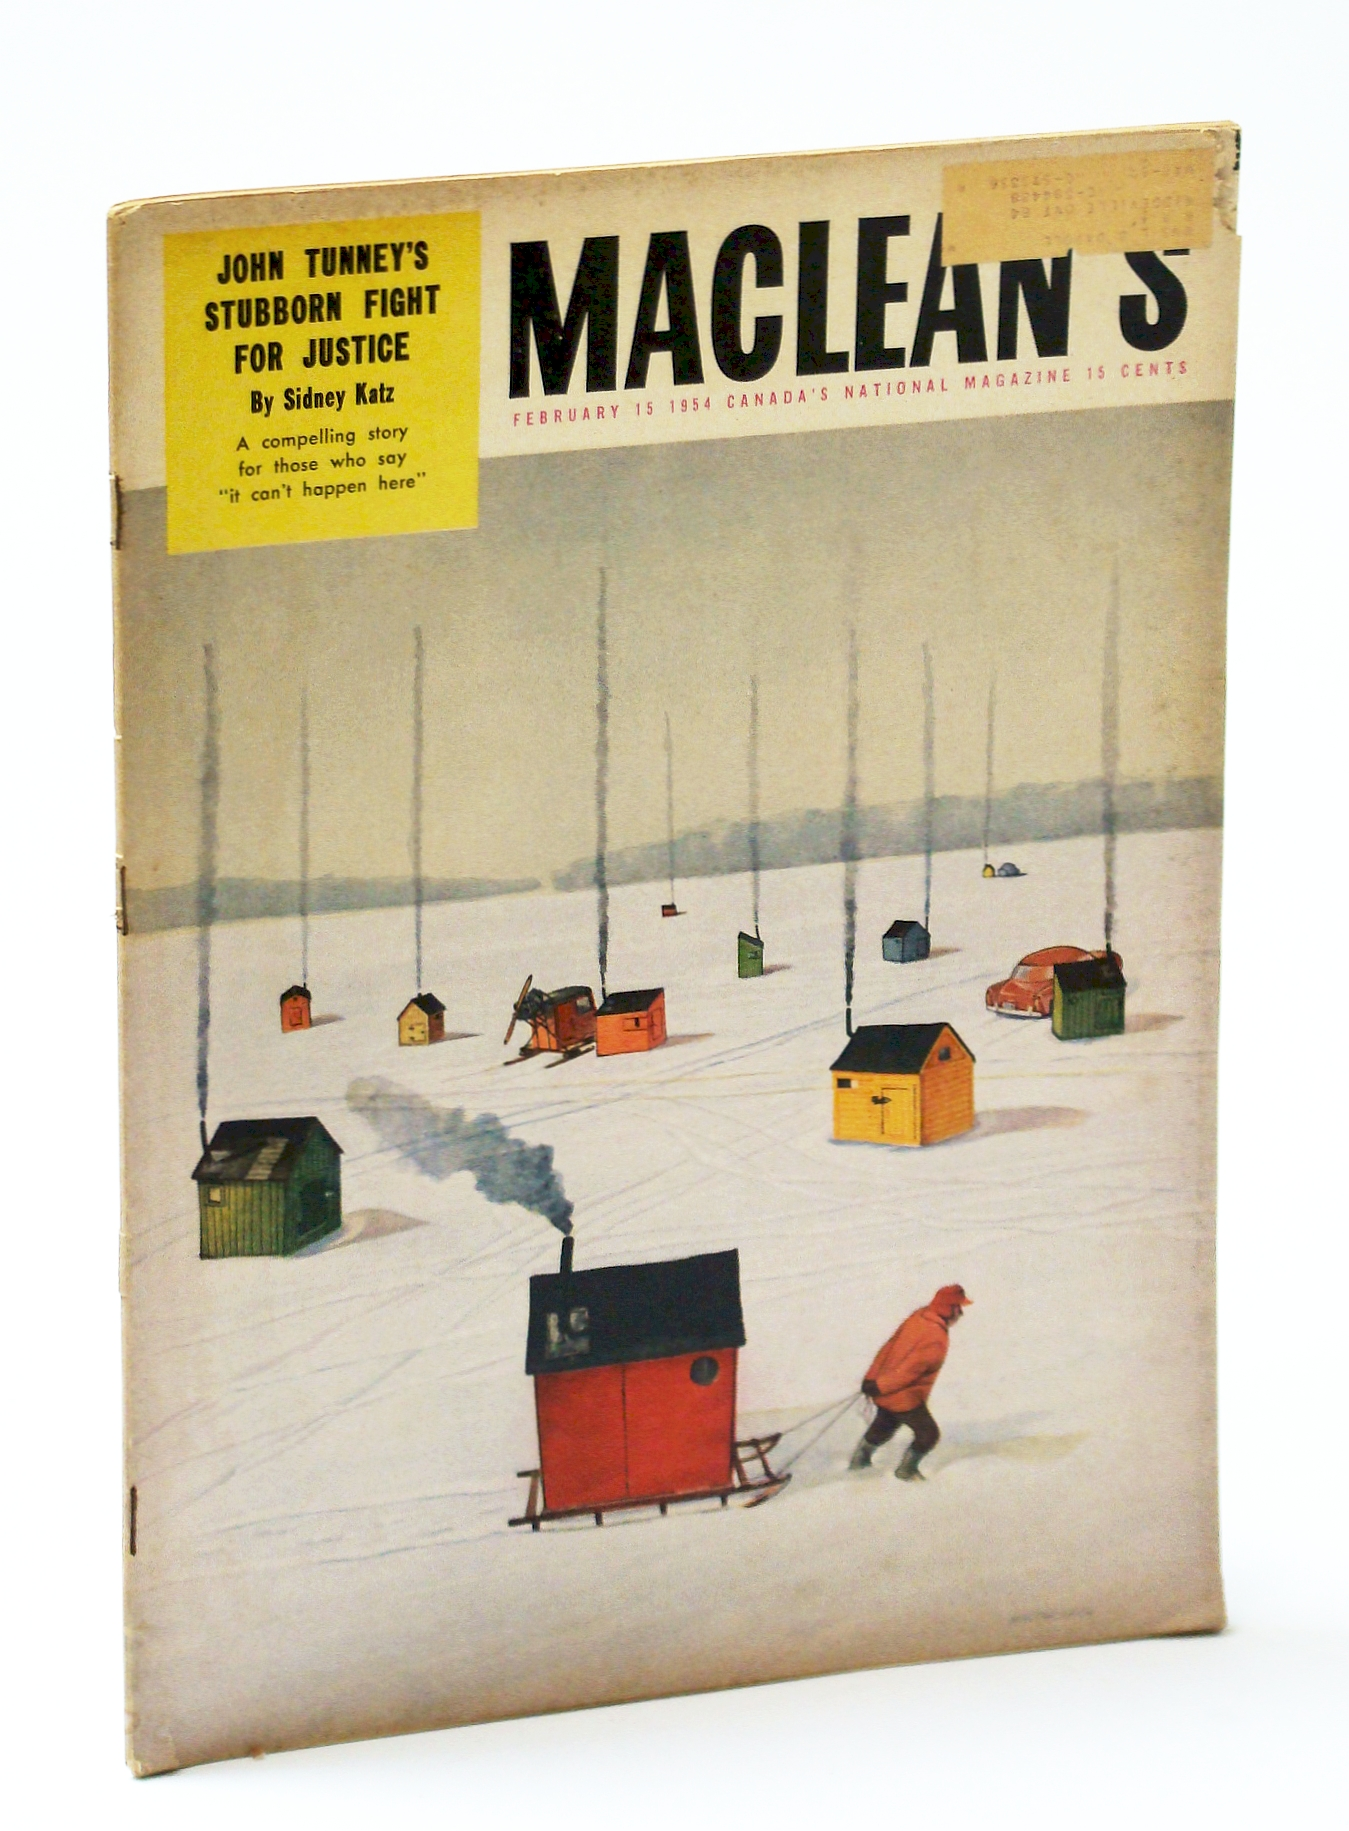 Image for Maclean's Magazine, February (Feb.) 15, 1954 - John Tunney's Fight for Justice